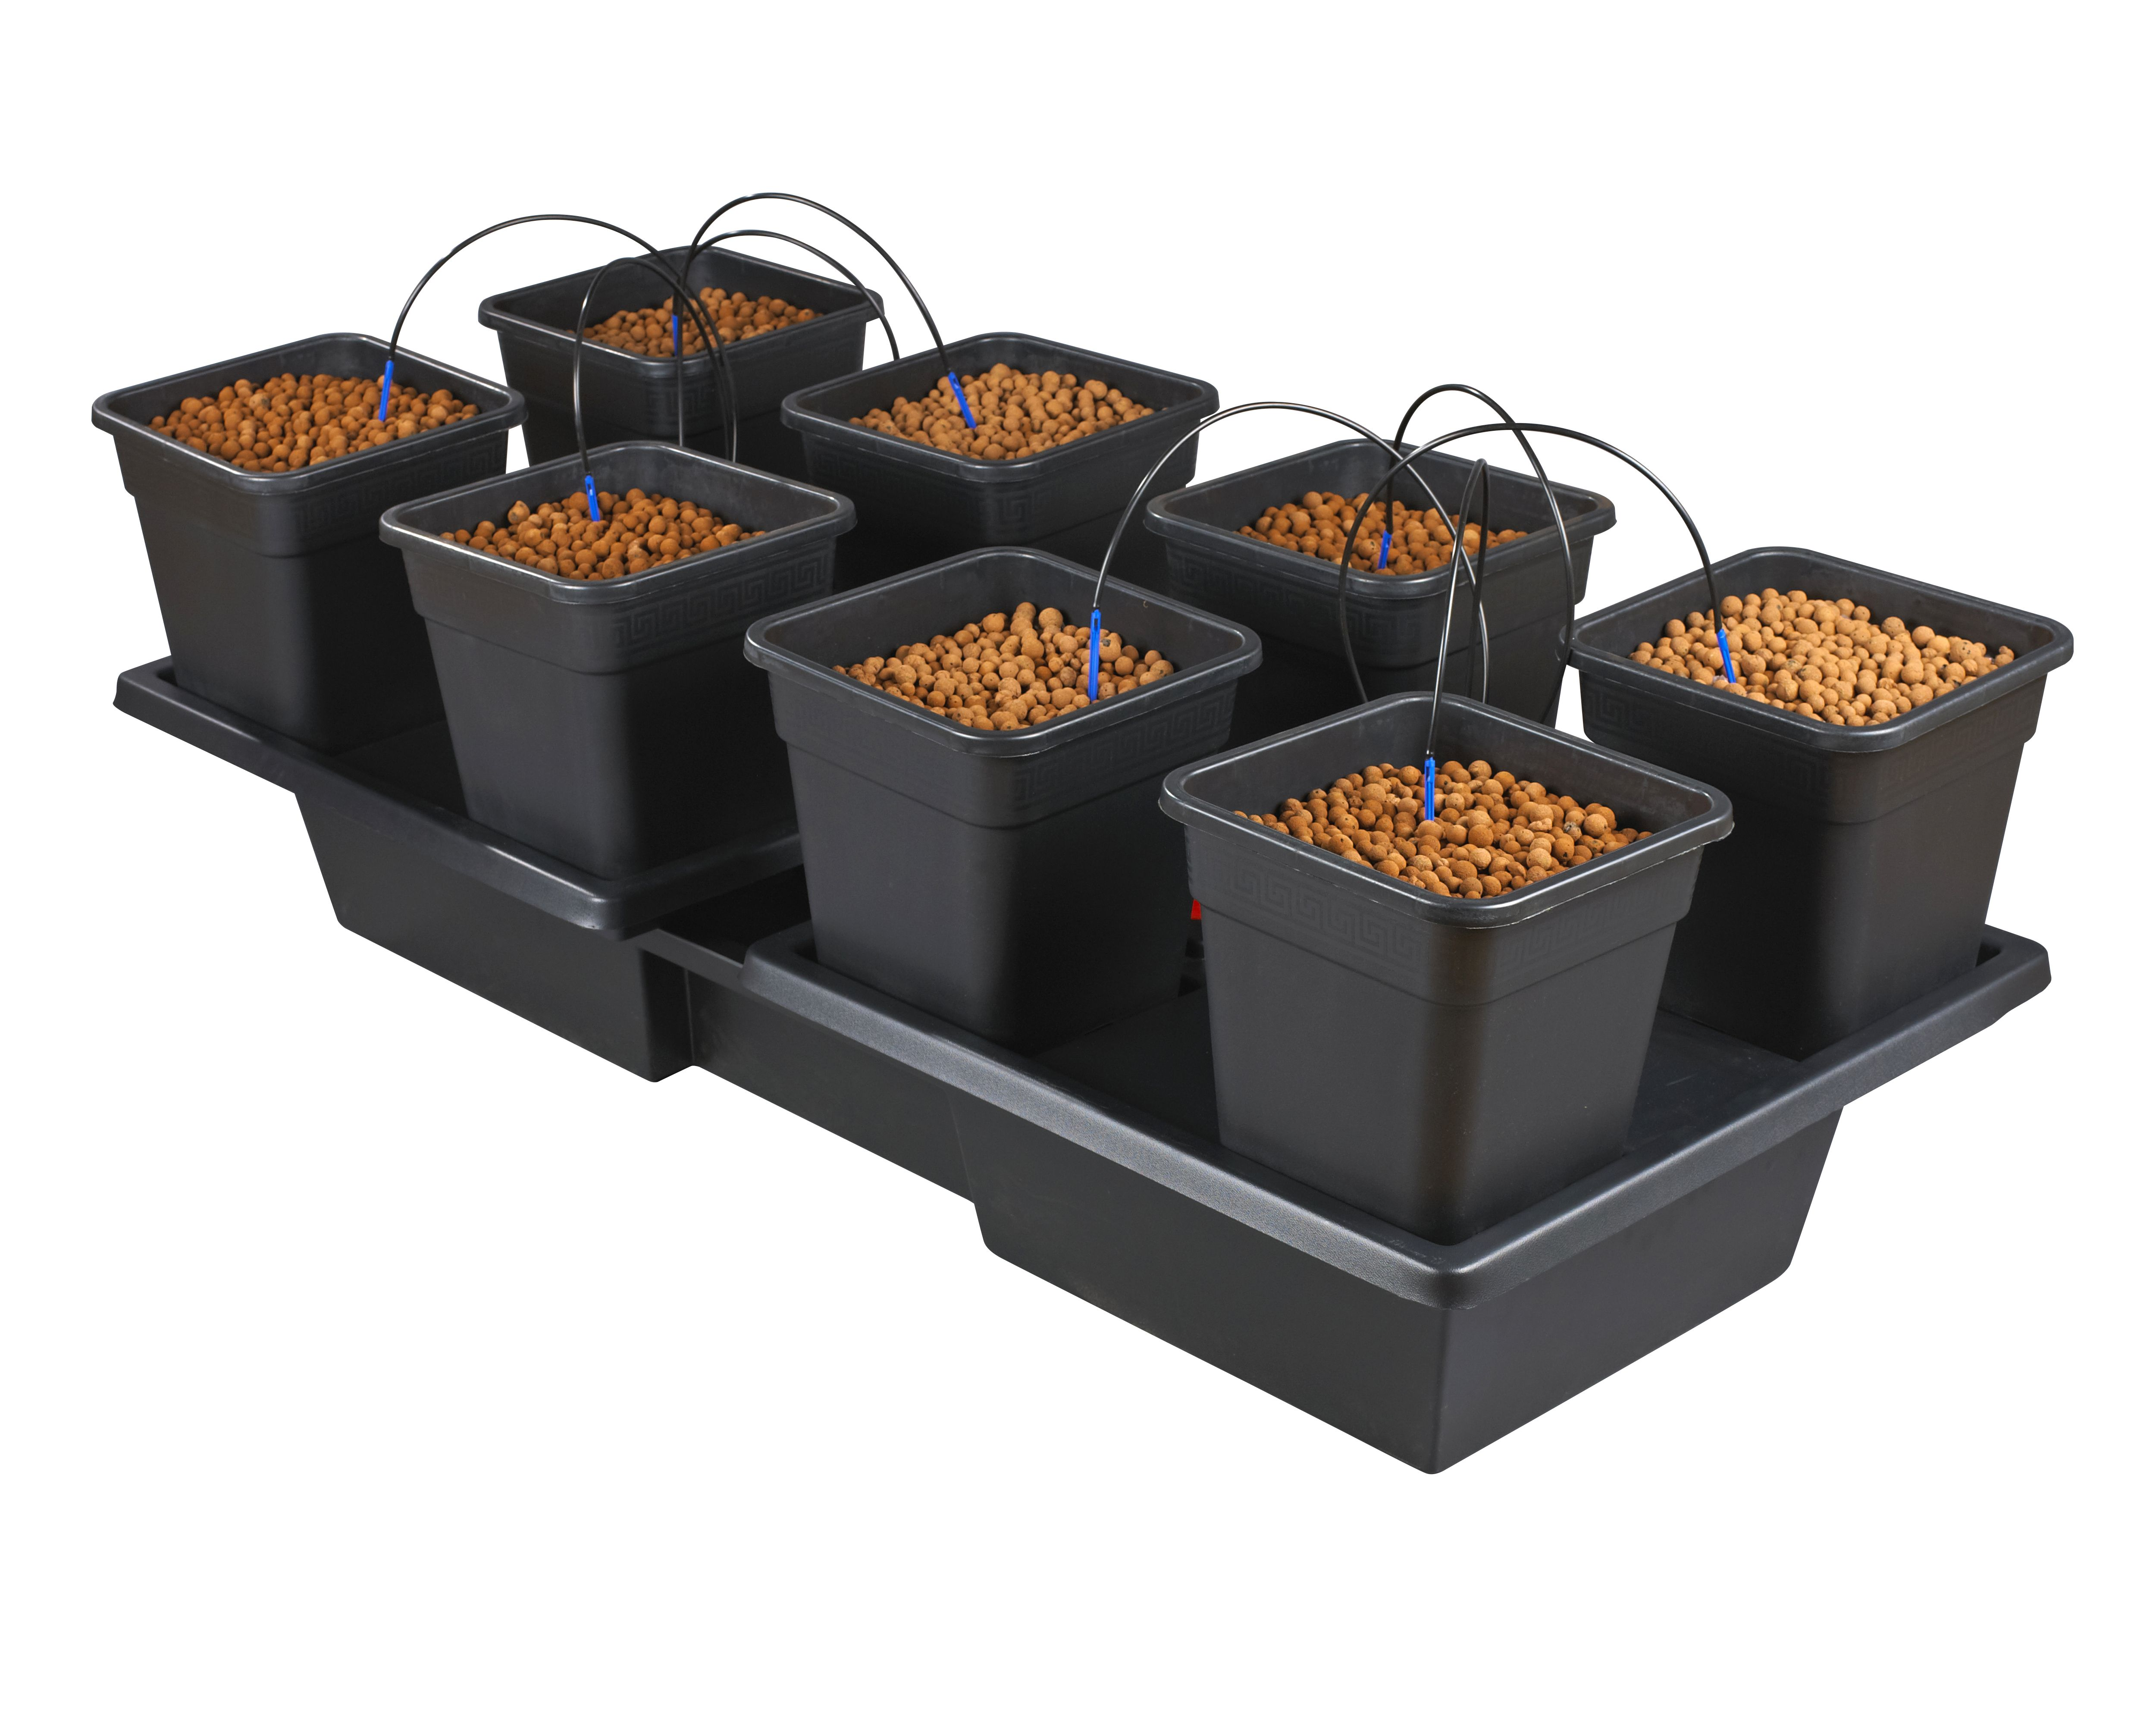 Wilma Large Wide 8 Complete System (18L Pots)